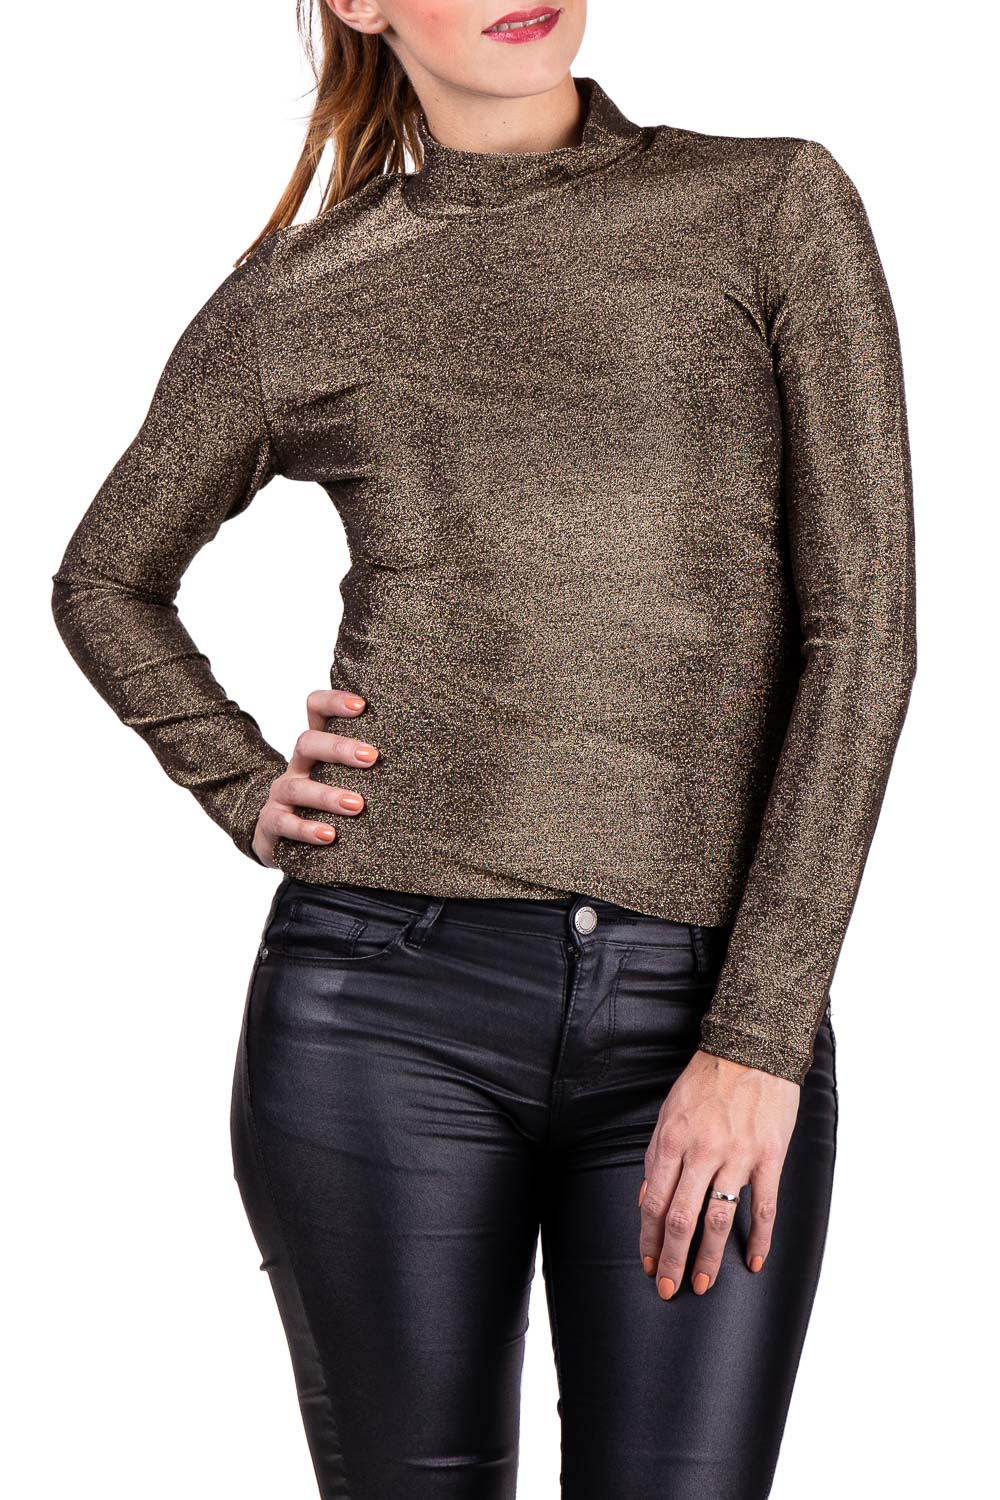 Anany Gold Glittering Polo Neck Sweater T-shirt Leganés Dorado